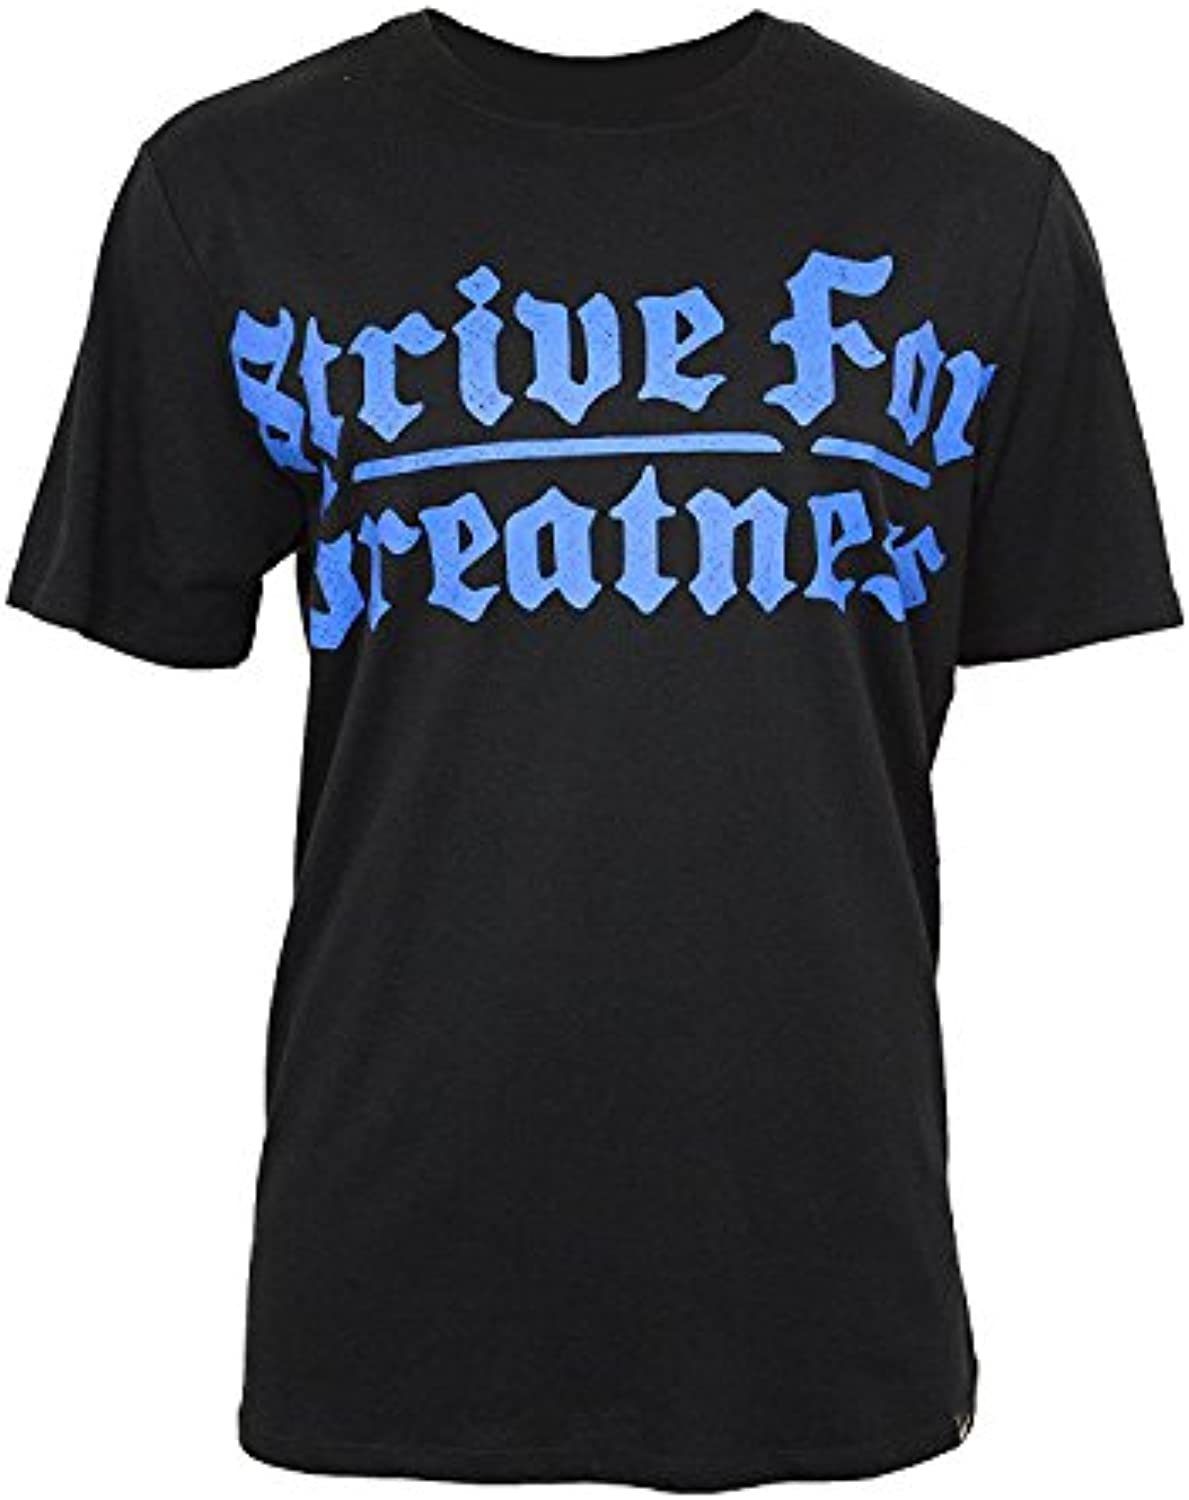 Camiseta Nike LeBron 1989 Strive for Greatness Dri-FIT (pequea)